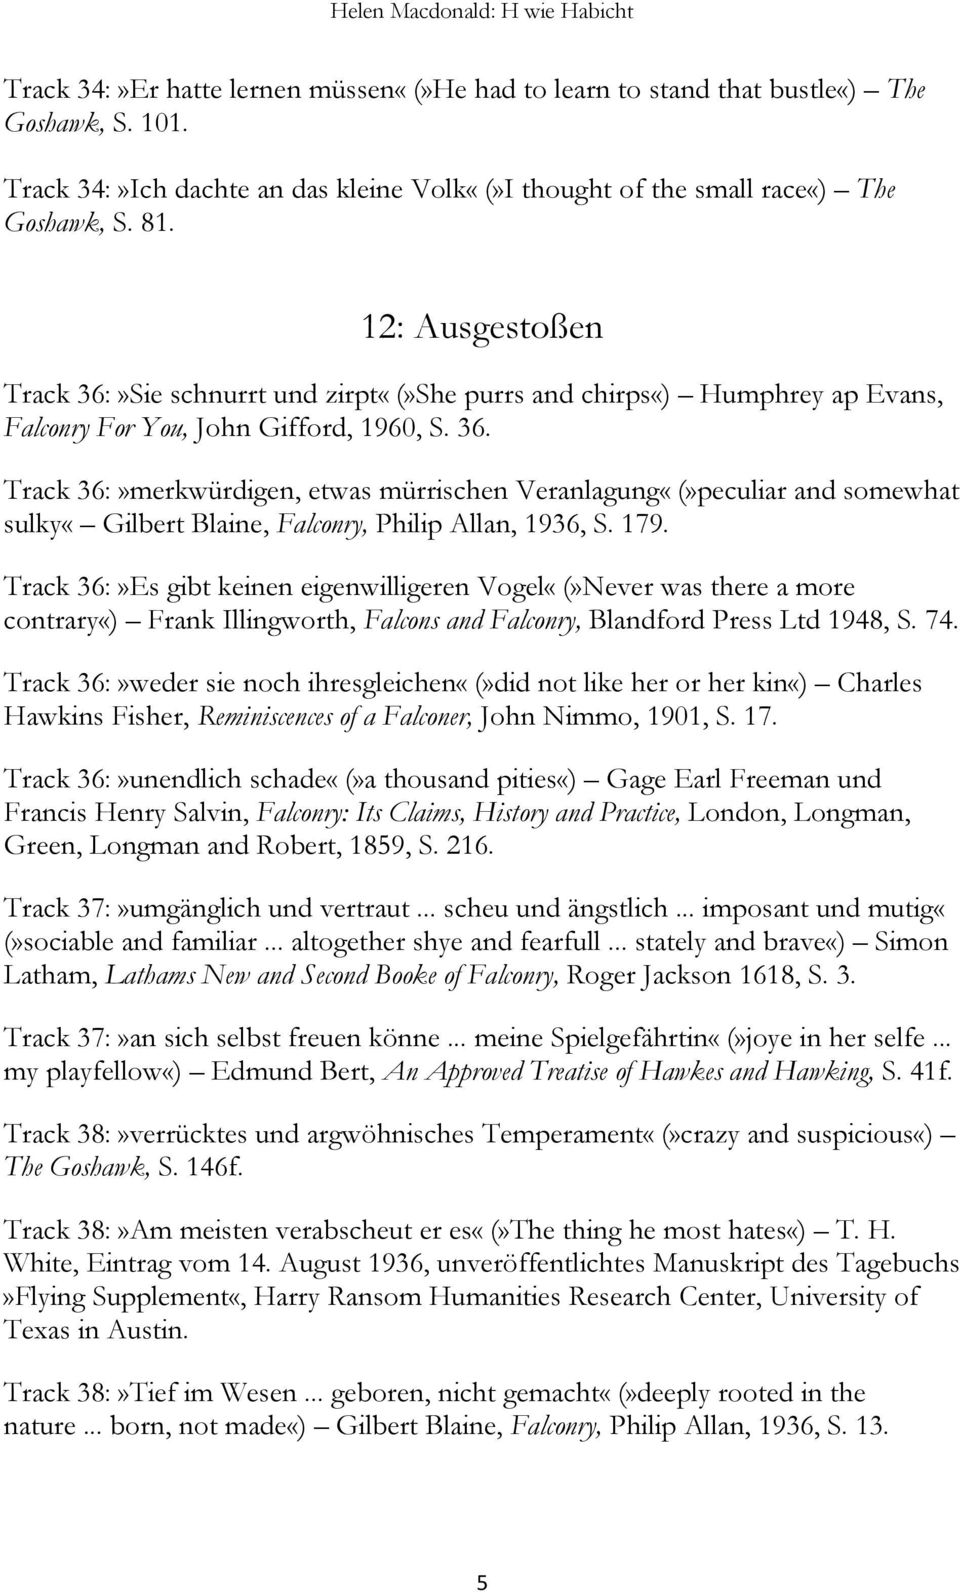 179. Track 36:»Es gibt keinen eigenwilligeren Vogel«(»Never was there a more contrary«) Frank Illingworth, Falcons and Falconry, Blandford Press Ltd 1948, S. 74.